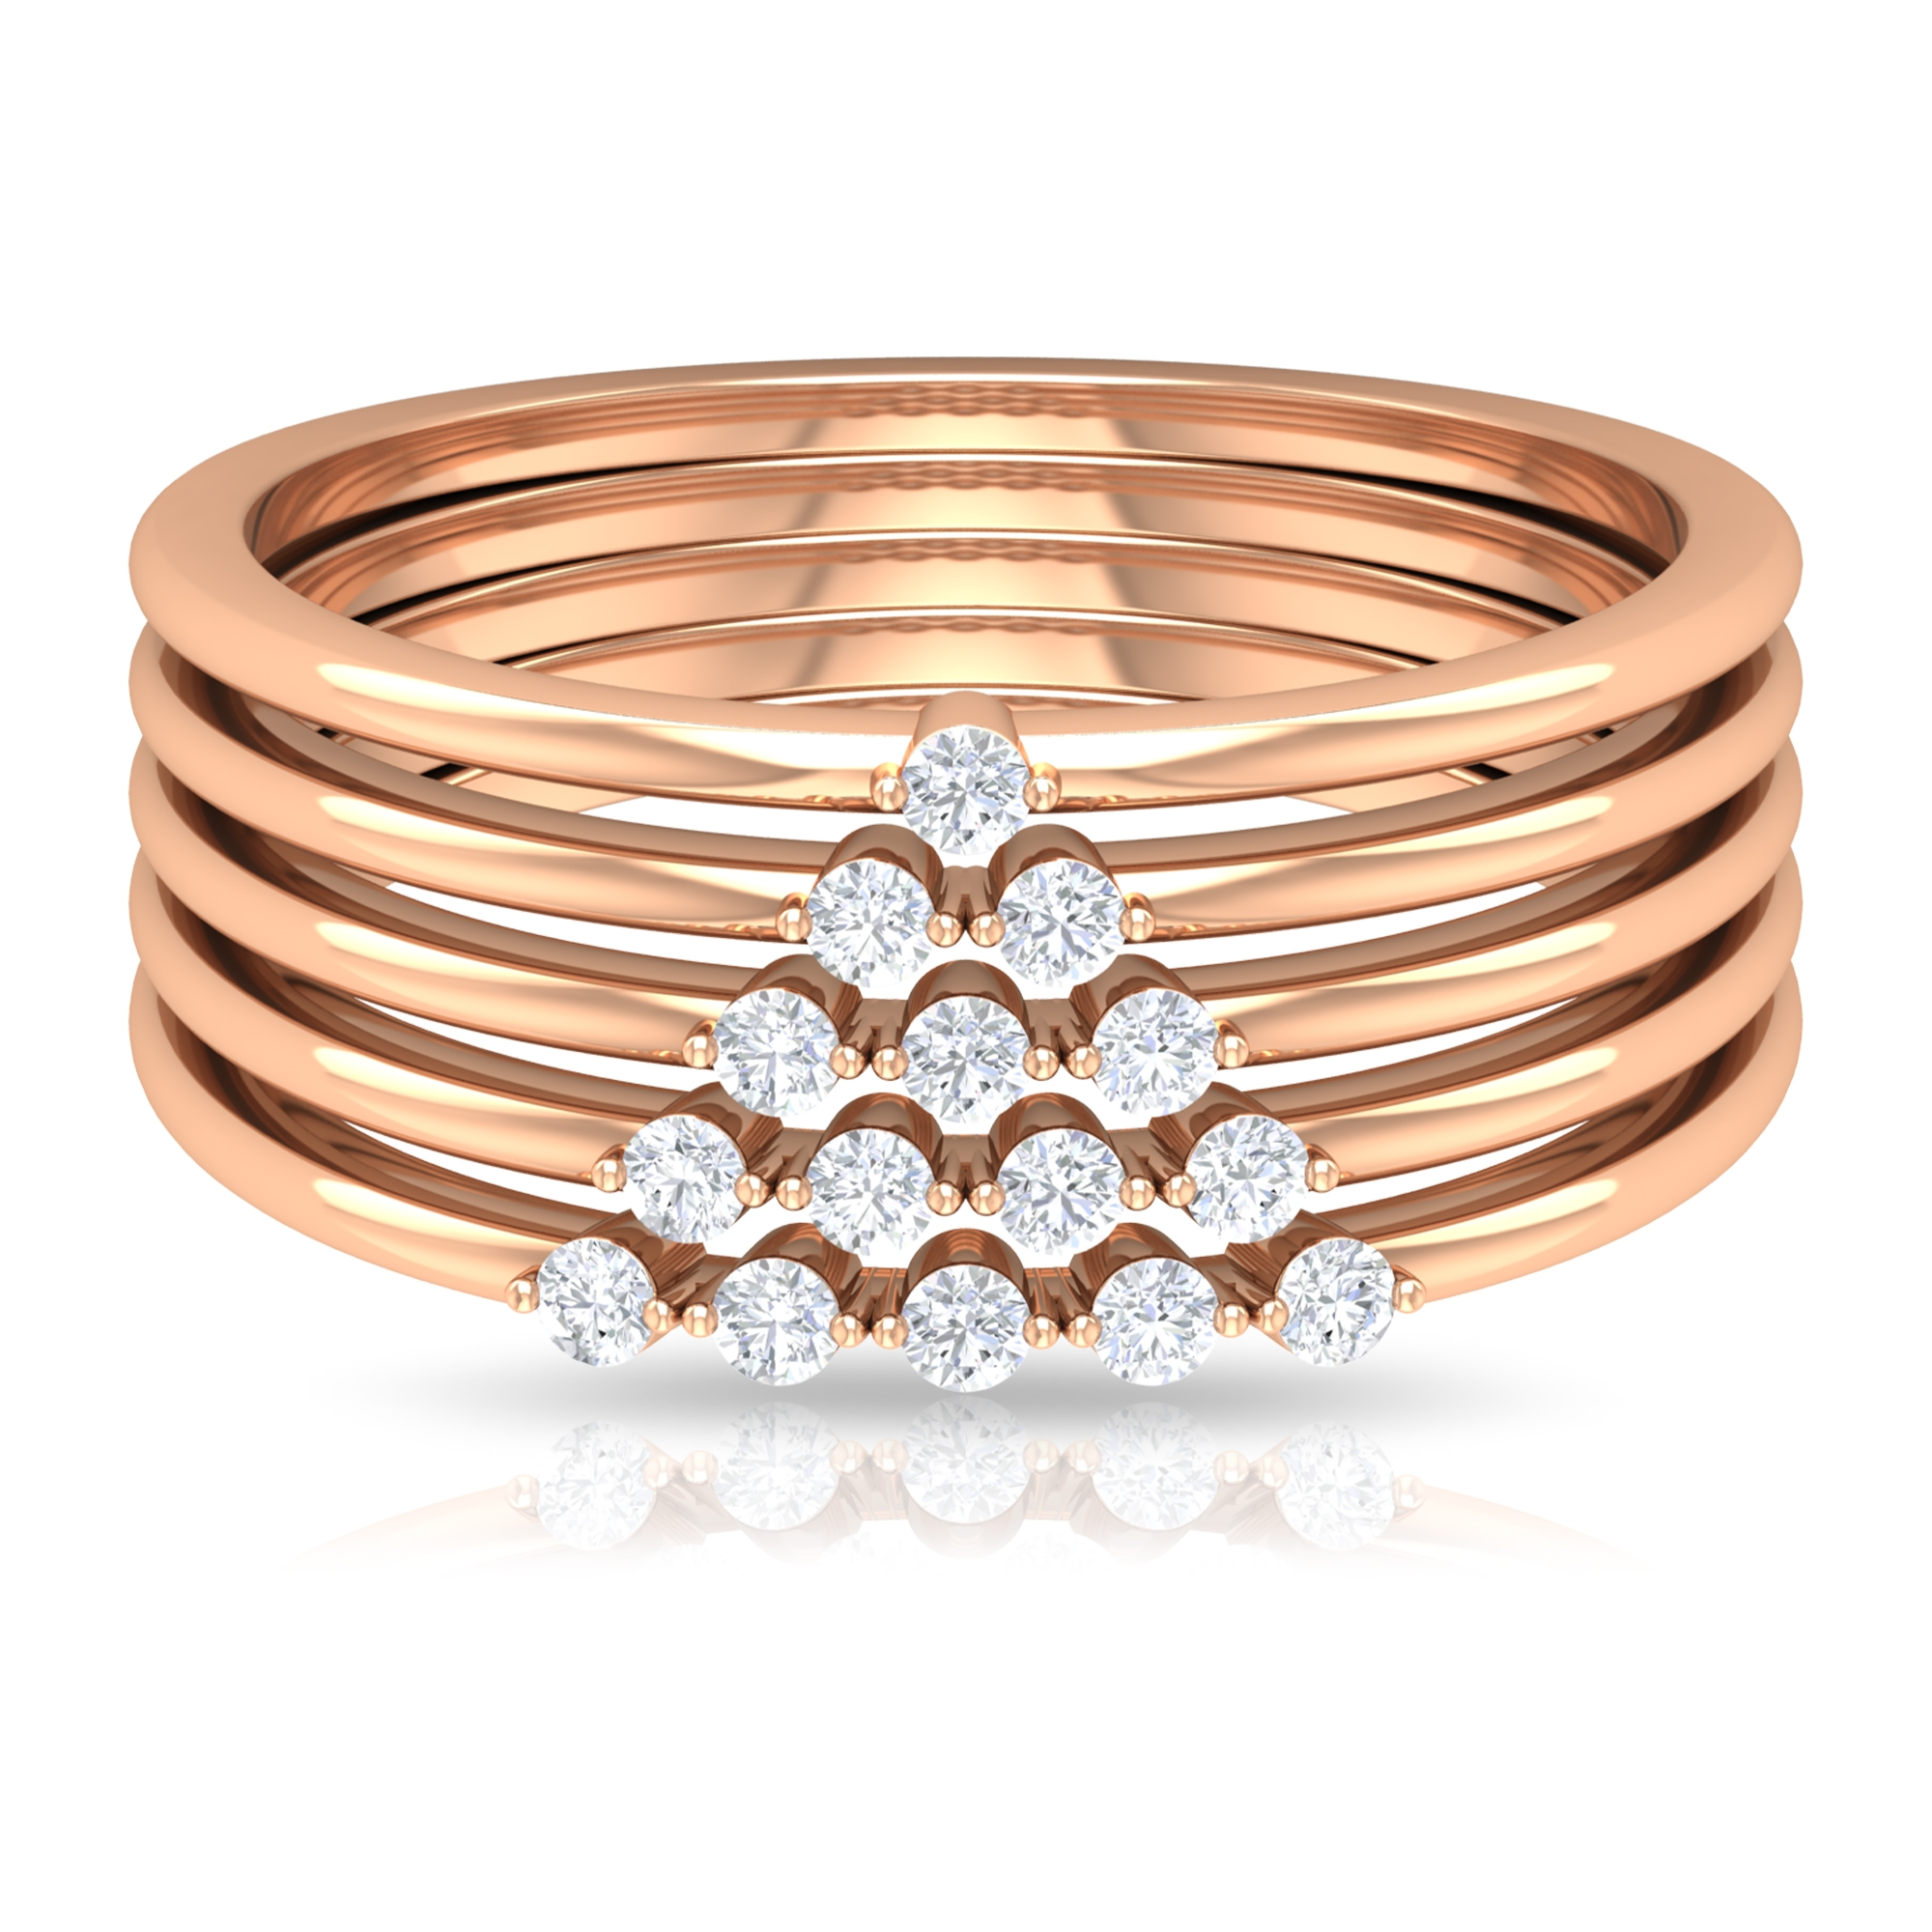 1/4 CT Prong Set Diamond and Gold Wide Ring for Women